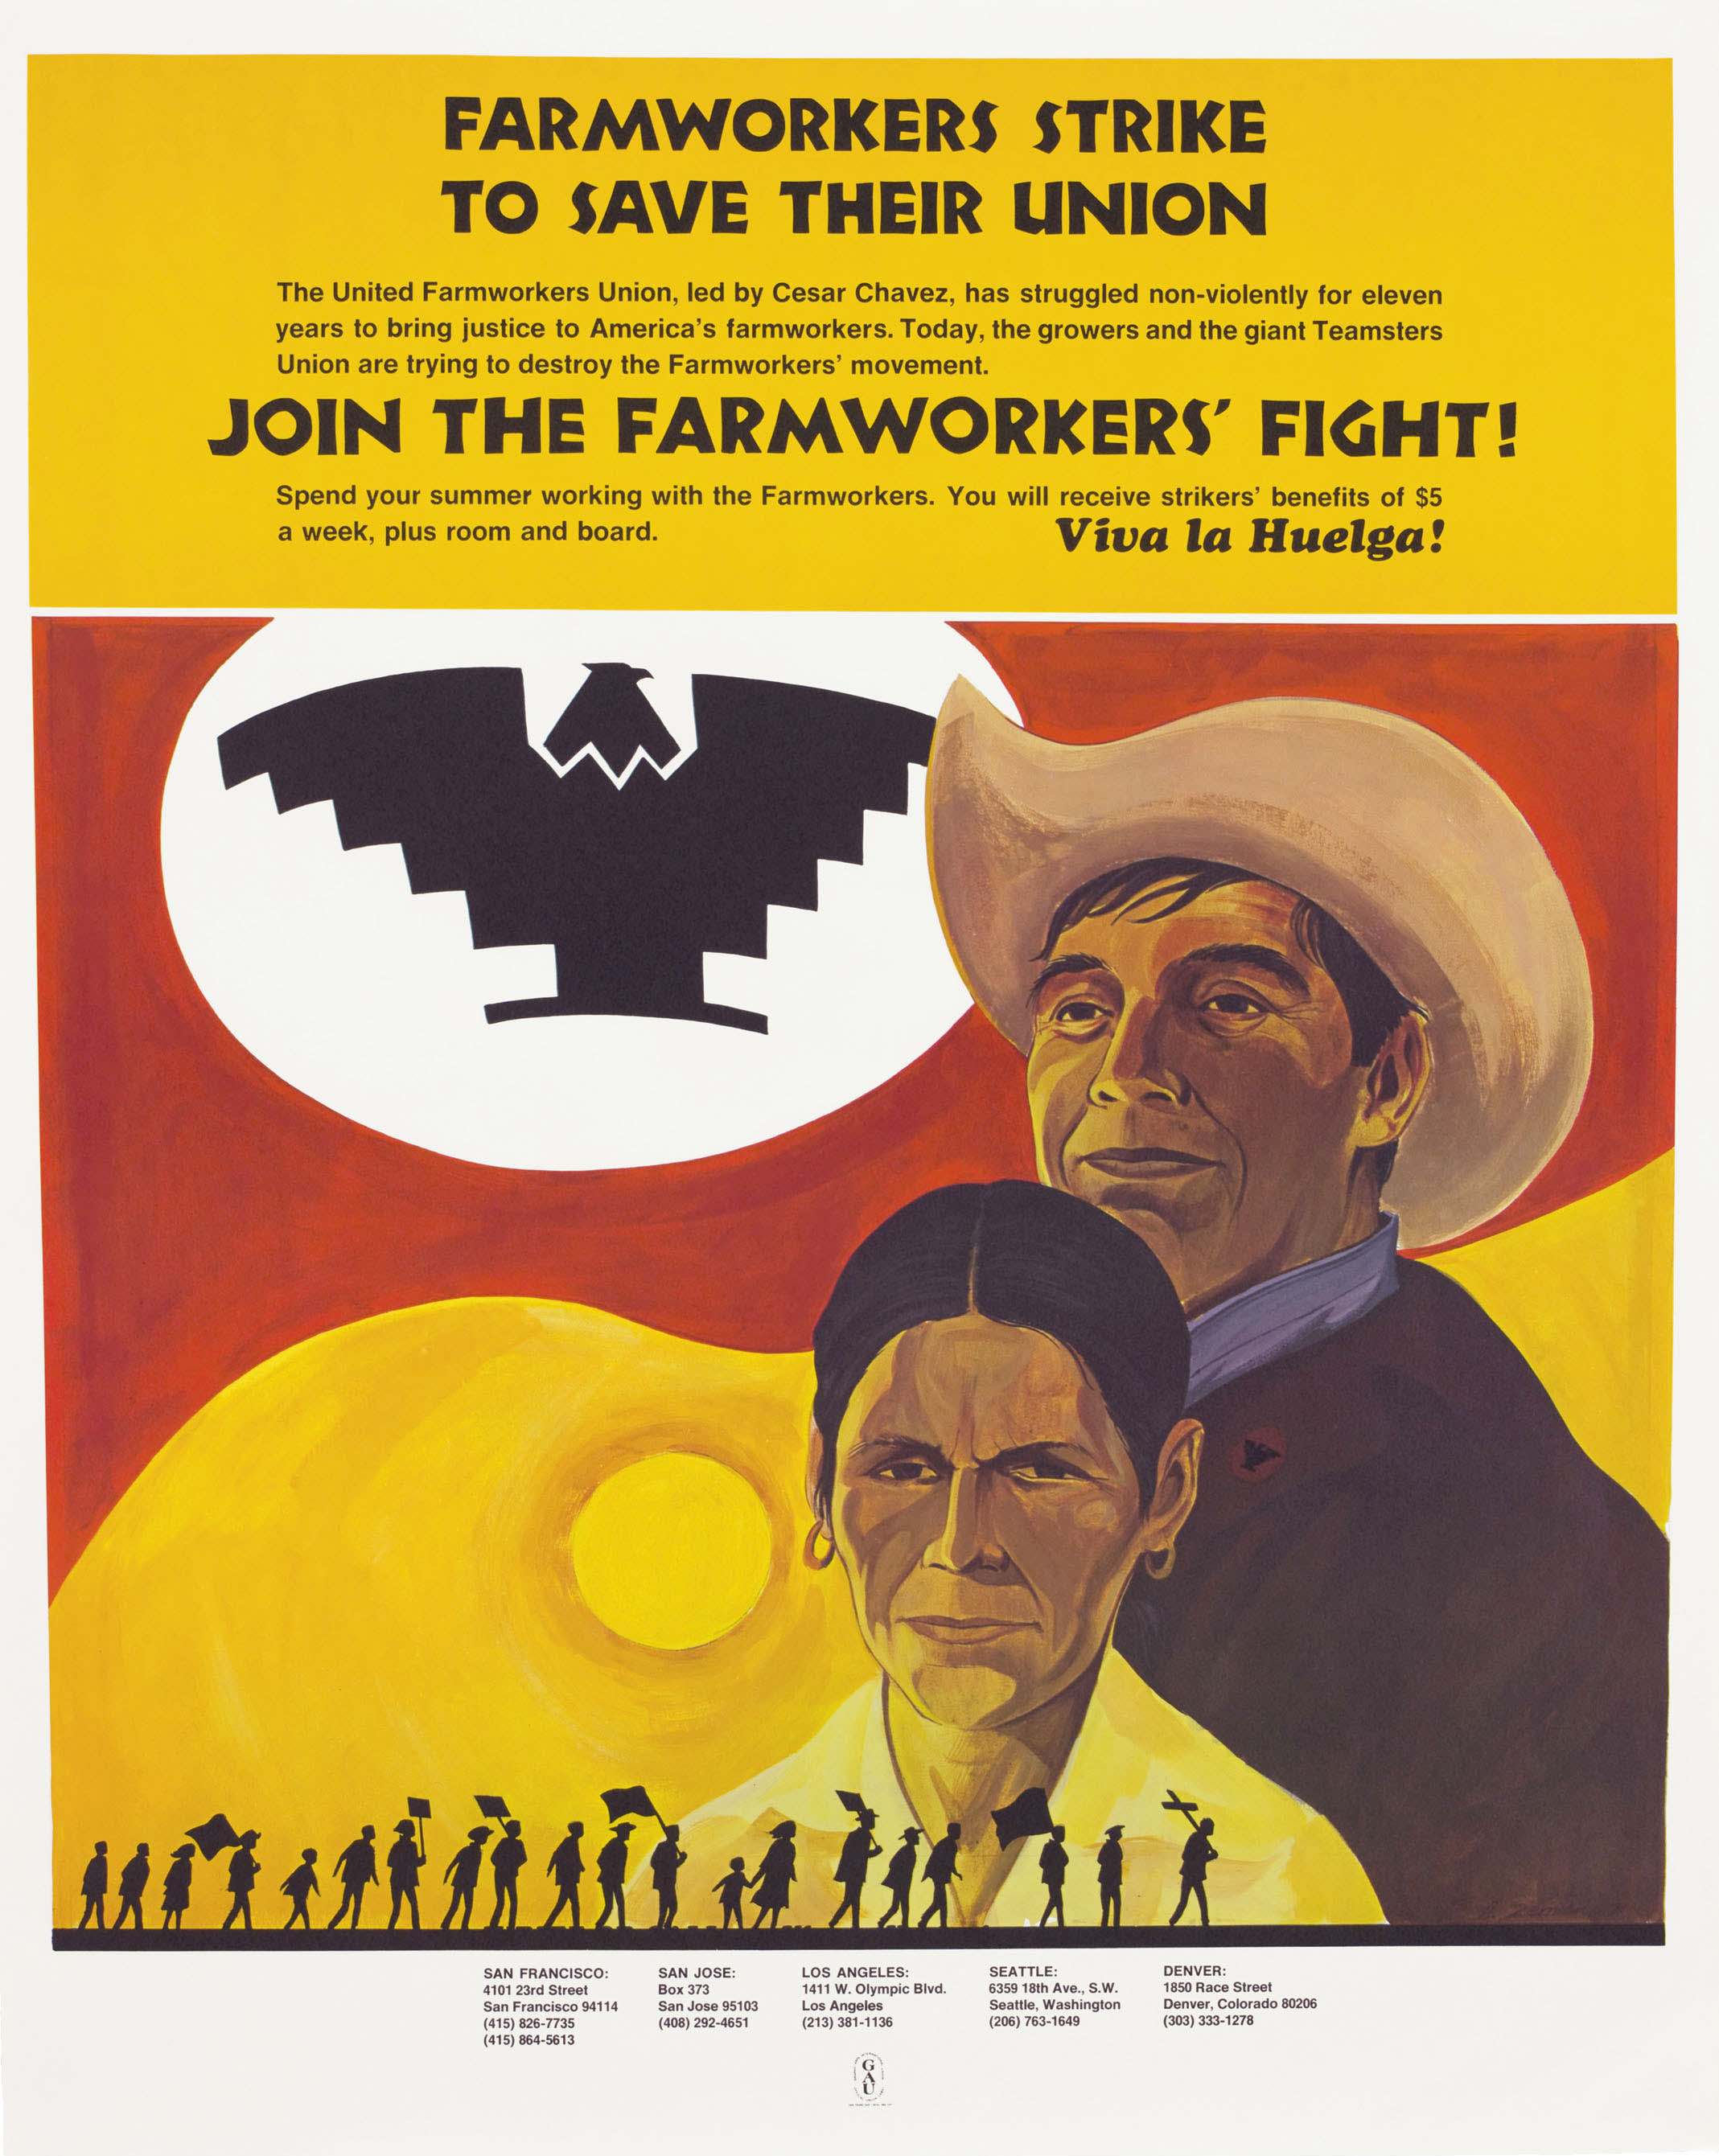 Farmworkers Strike to Save Their Union, by Andrew Zermeno, 1971